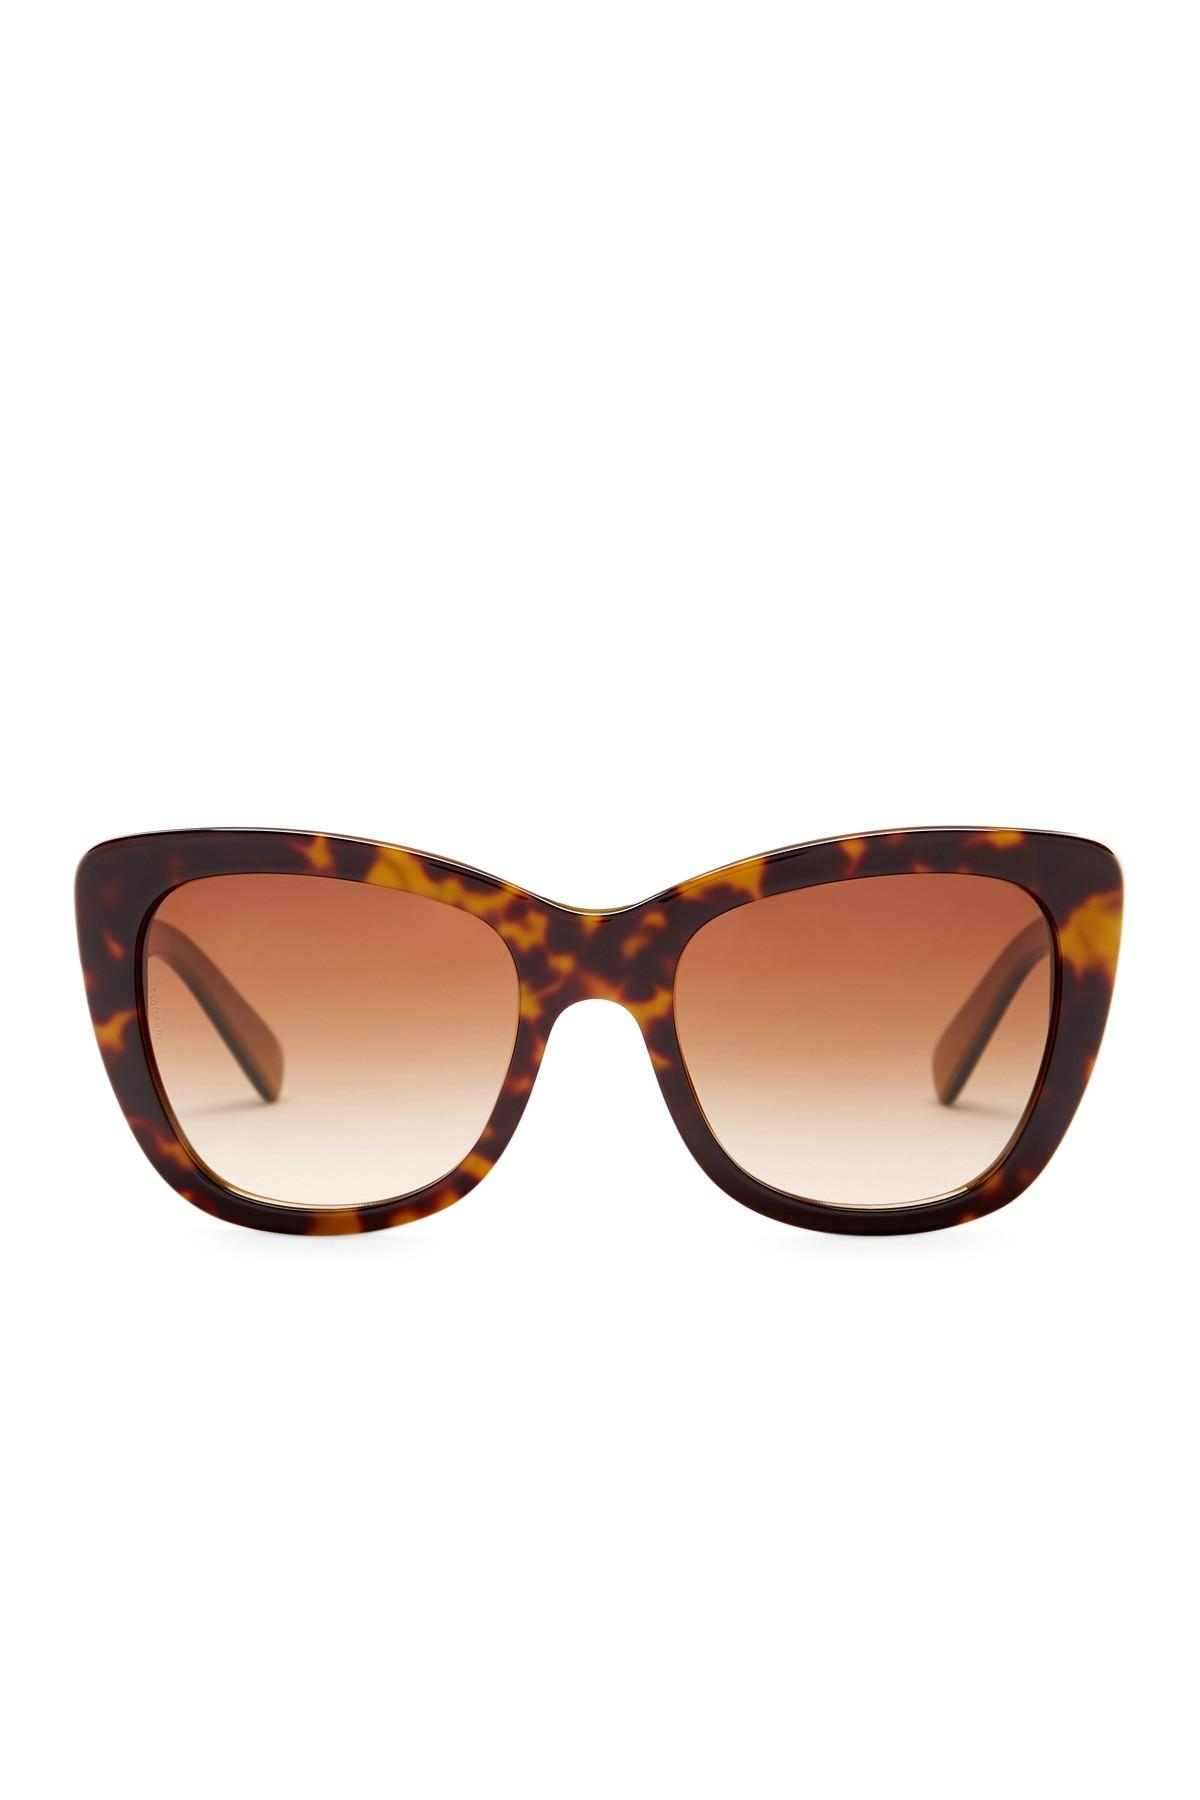 Dolce Gabana Glasses Nose Pads Au